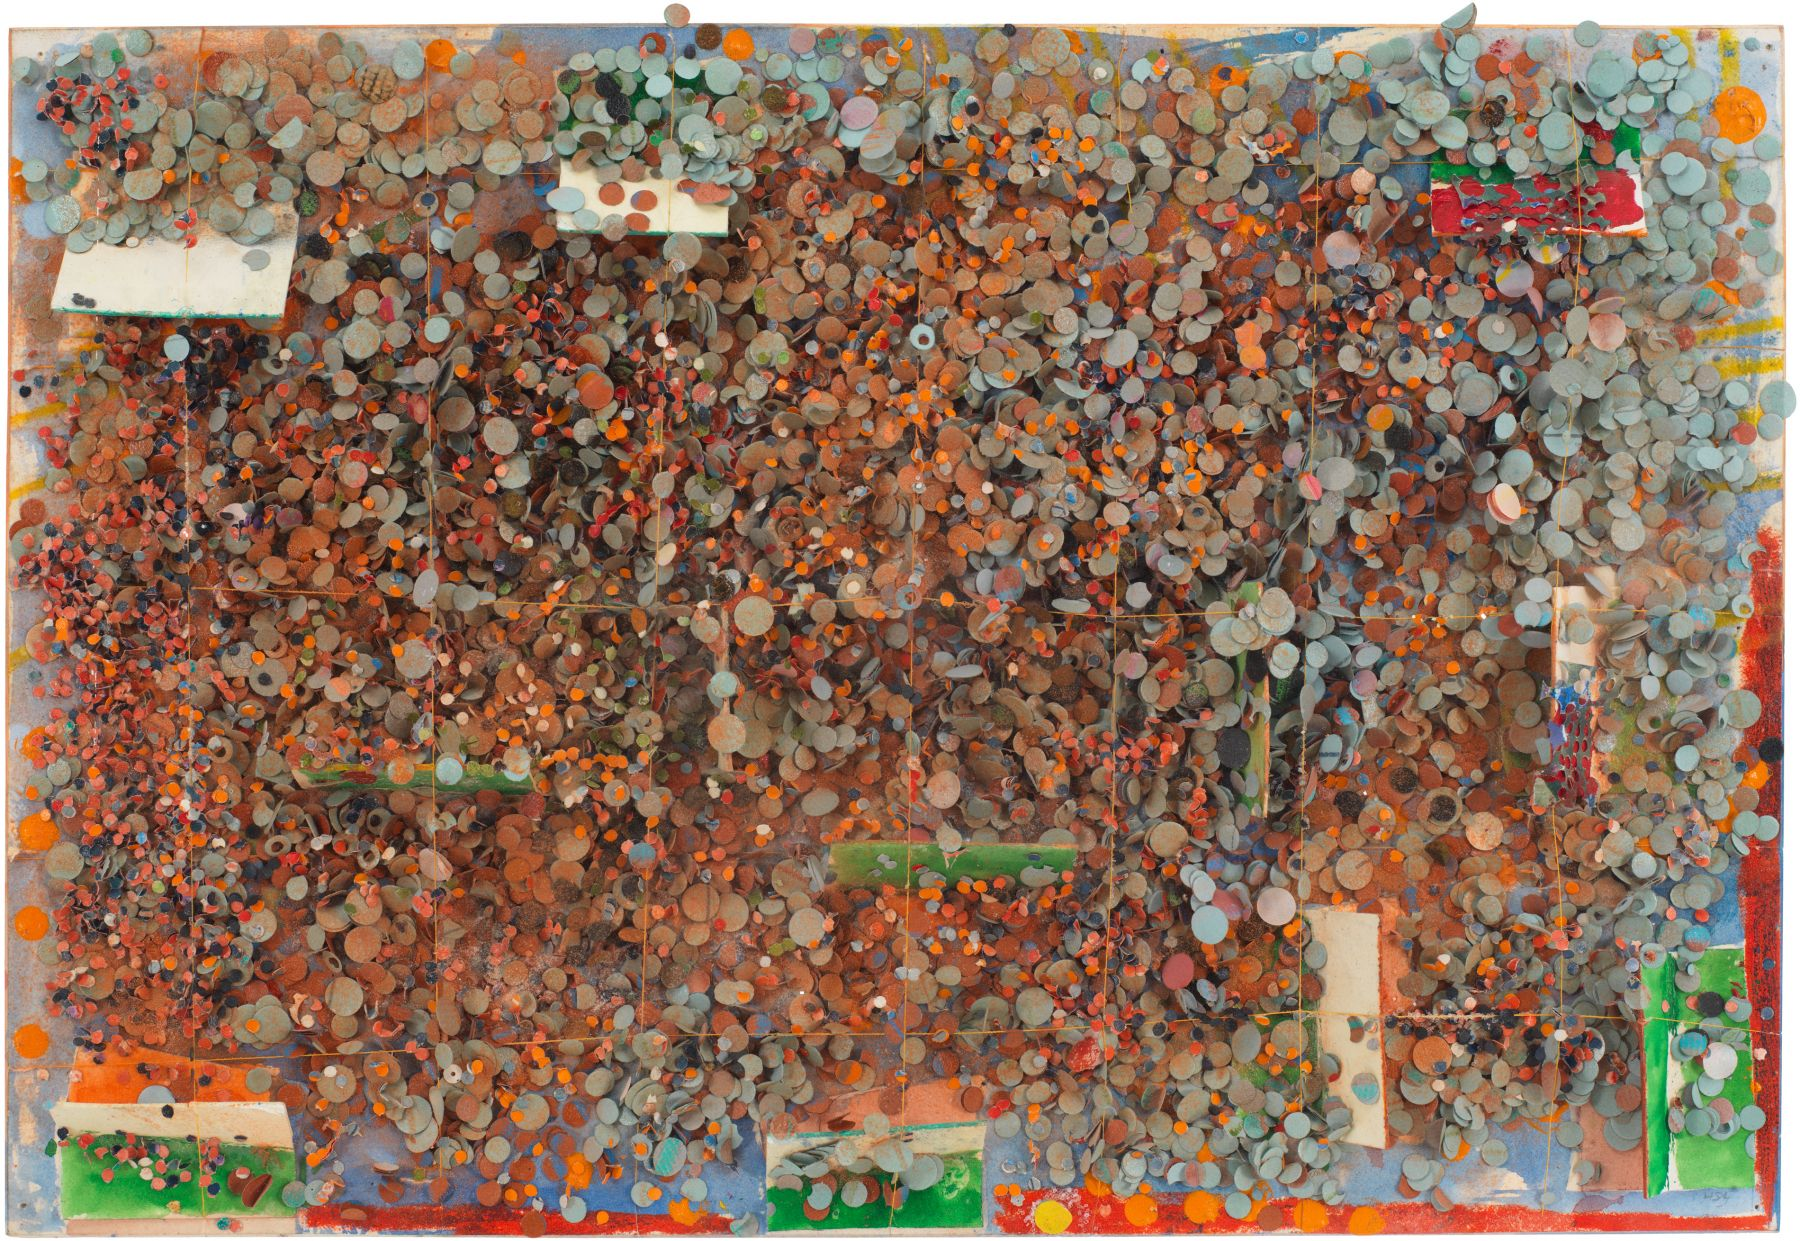 Untitled #84, 1977, Mixed media on board